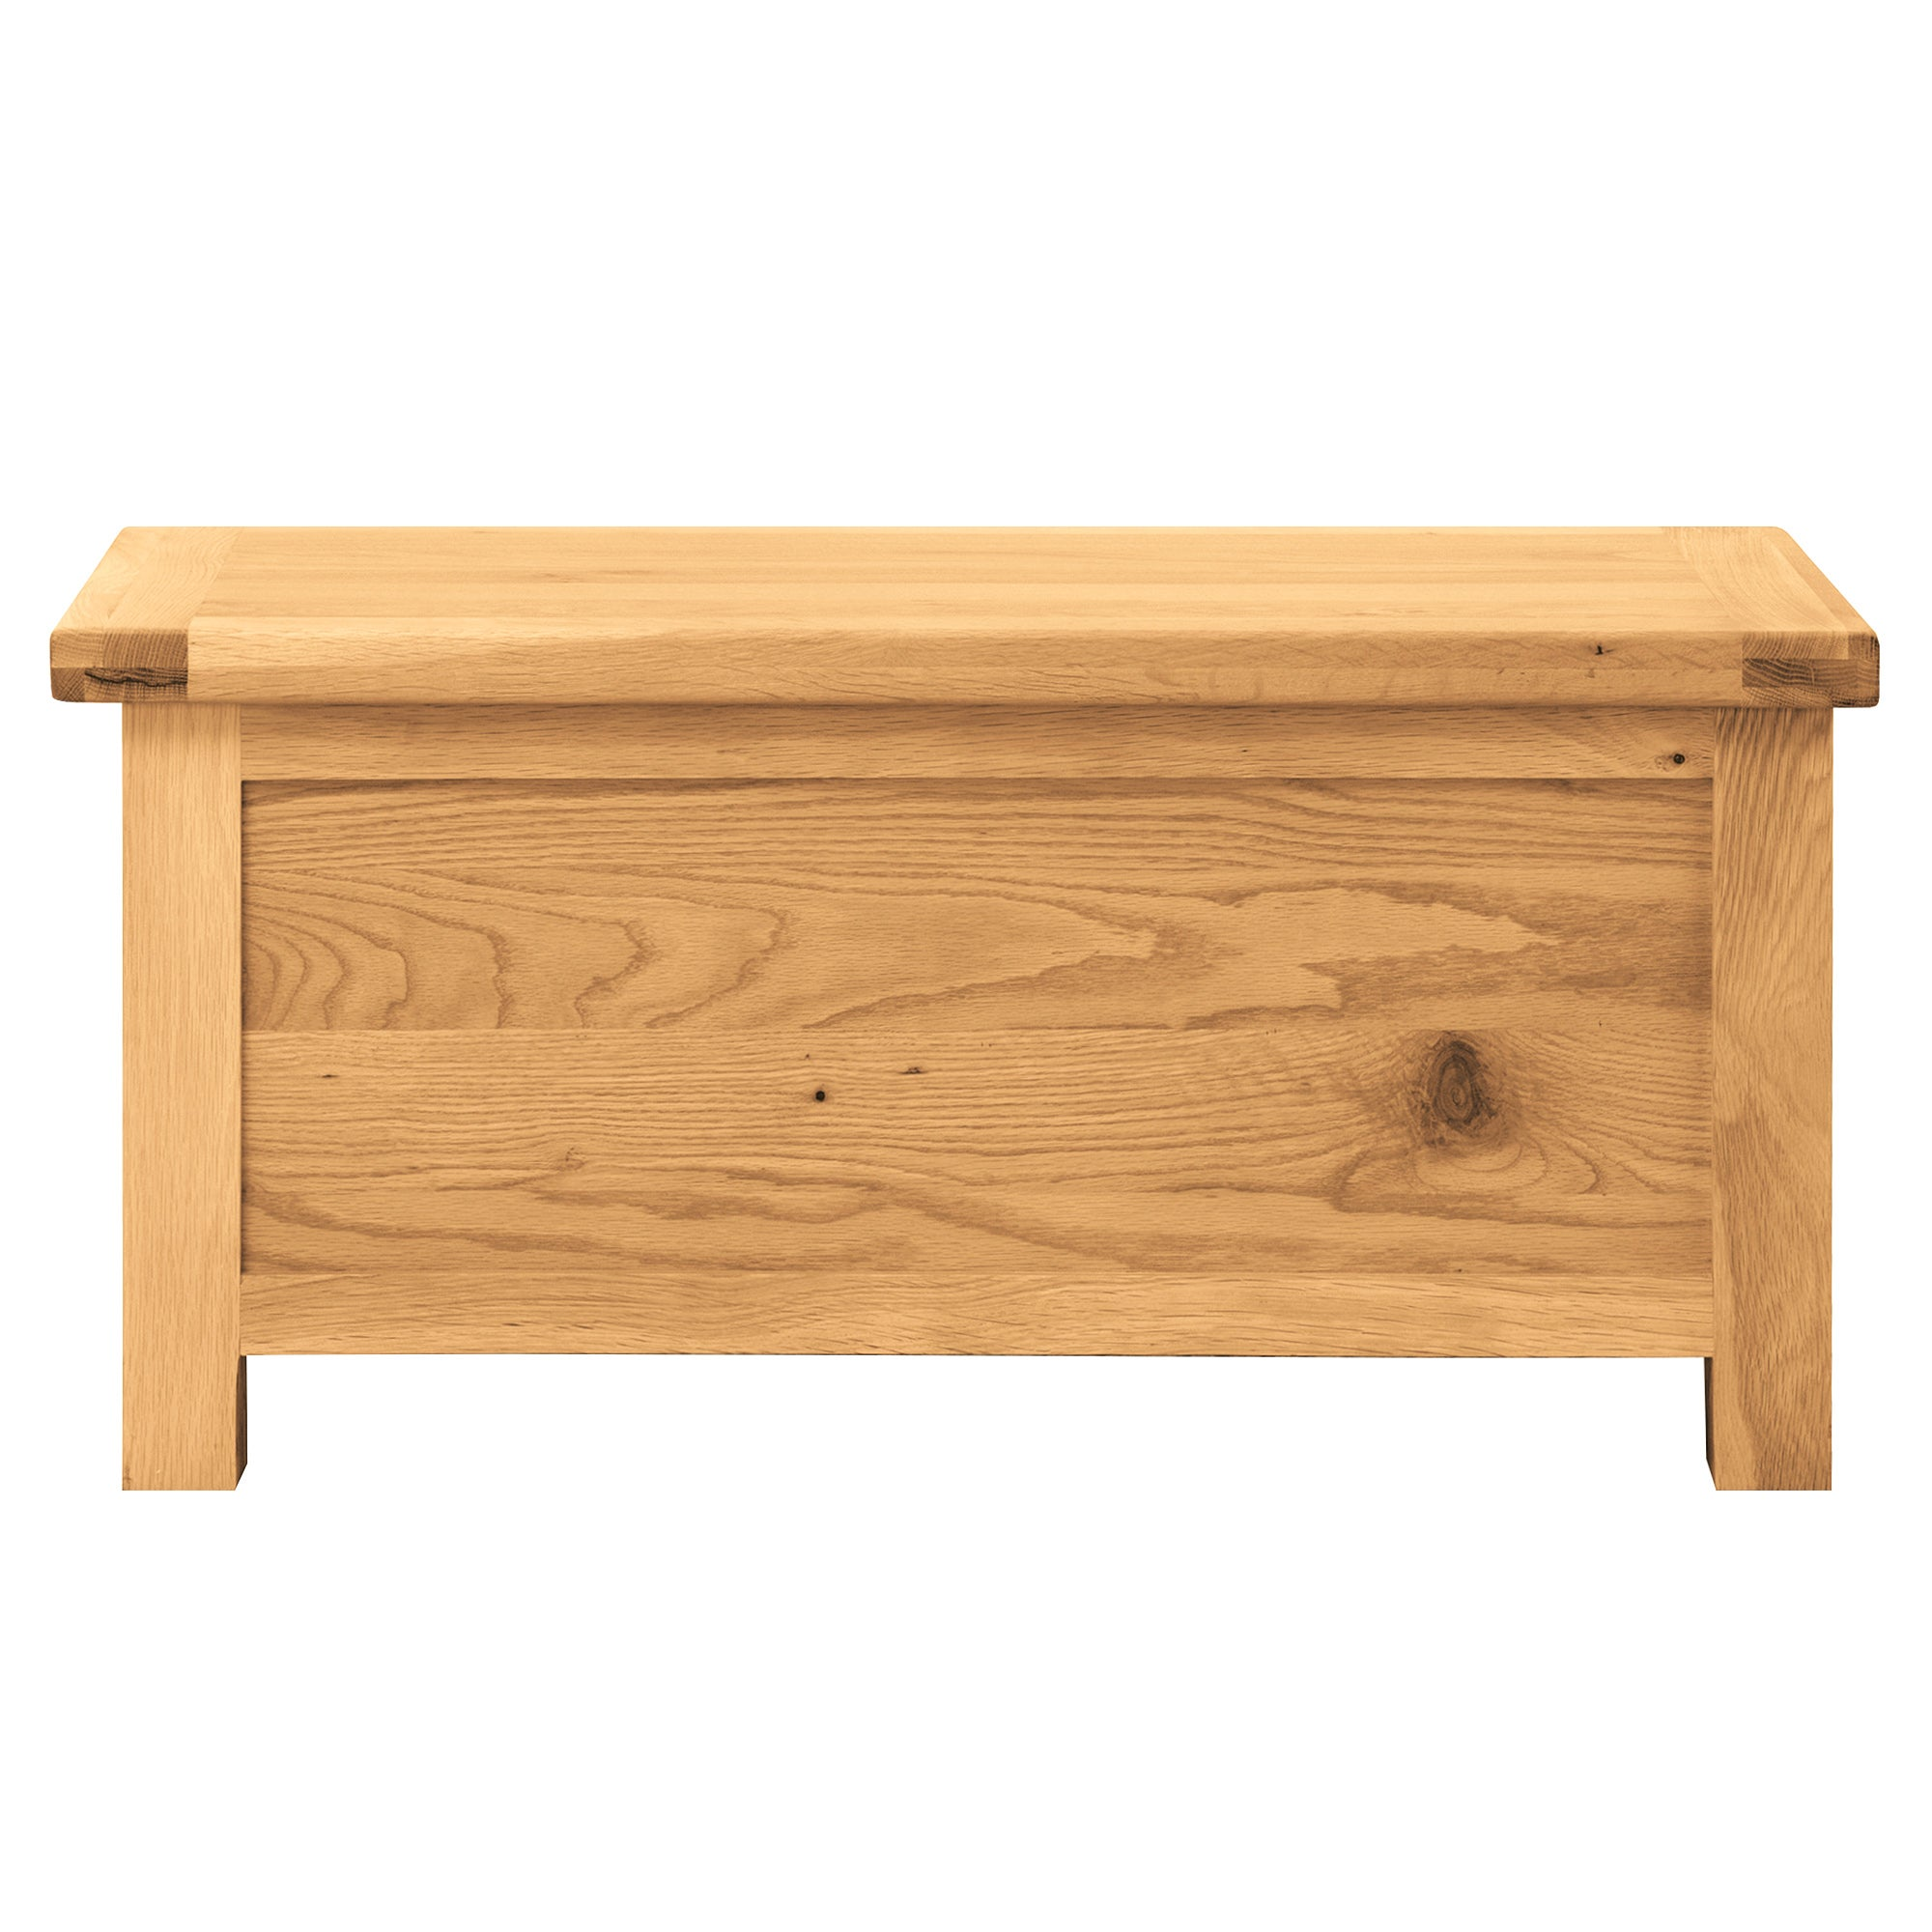 Harrogate Oak Storage Box